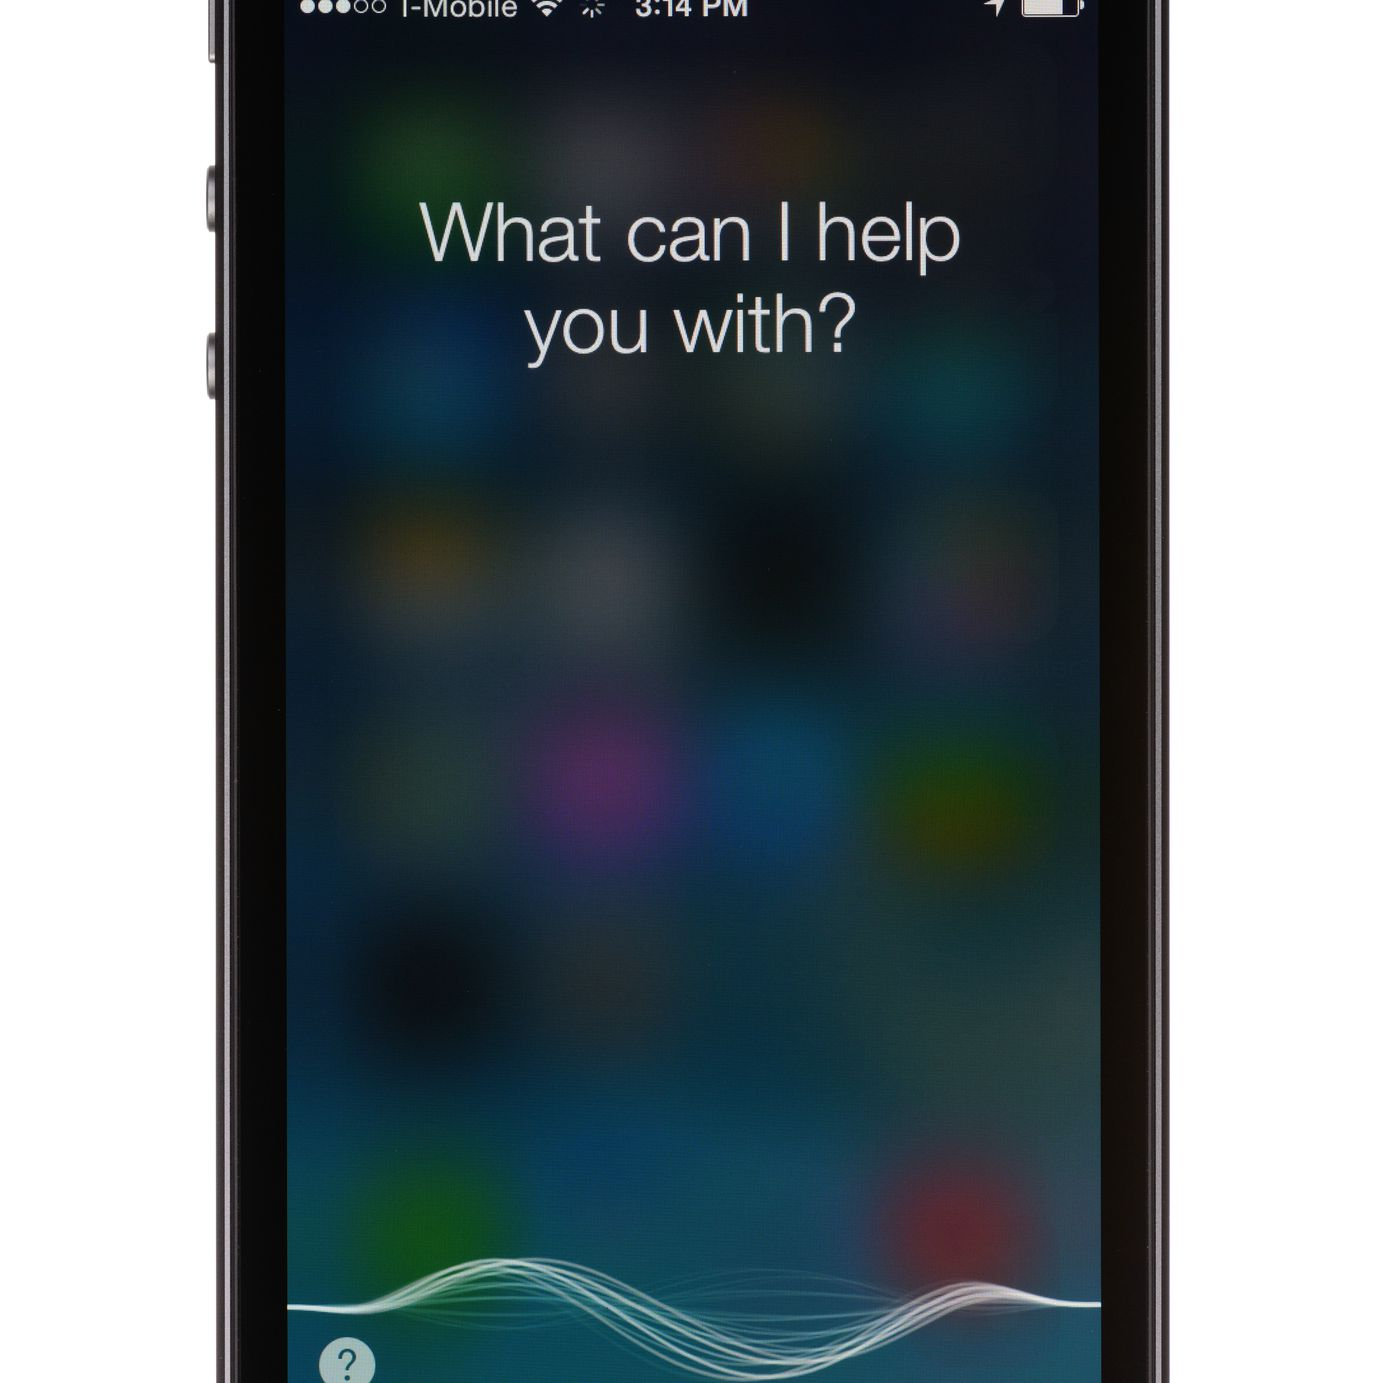 Activating Siri on the iPhone